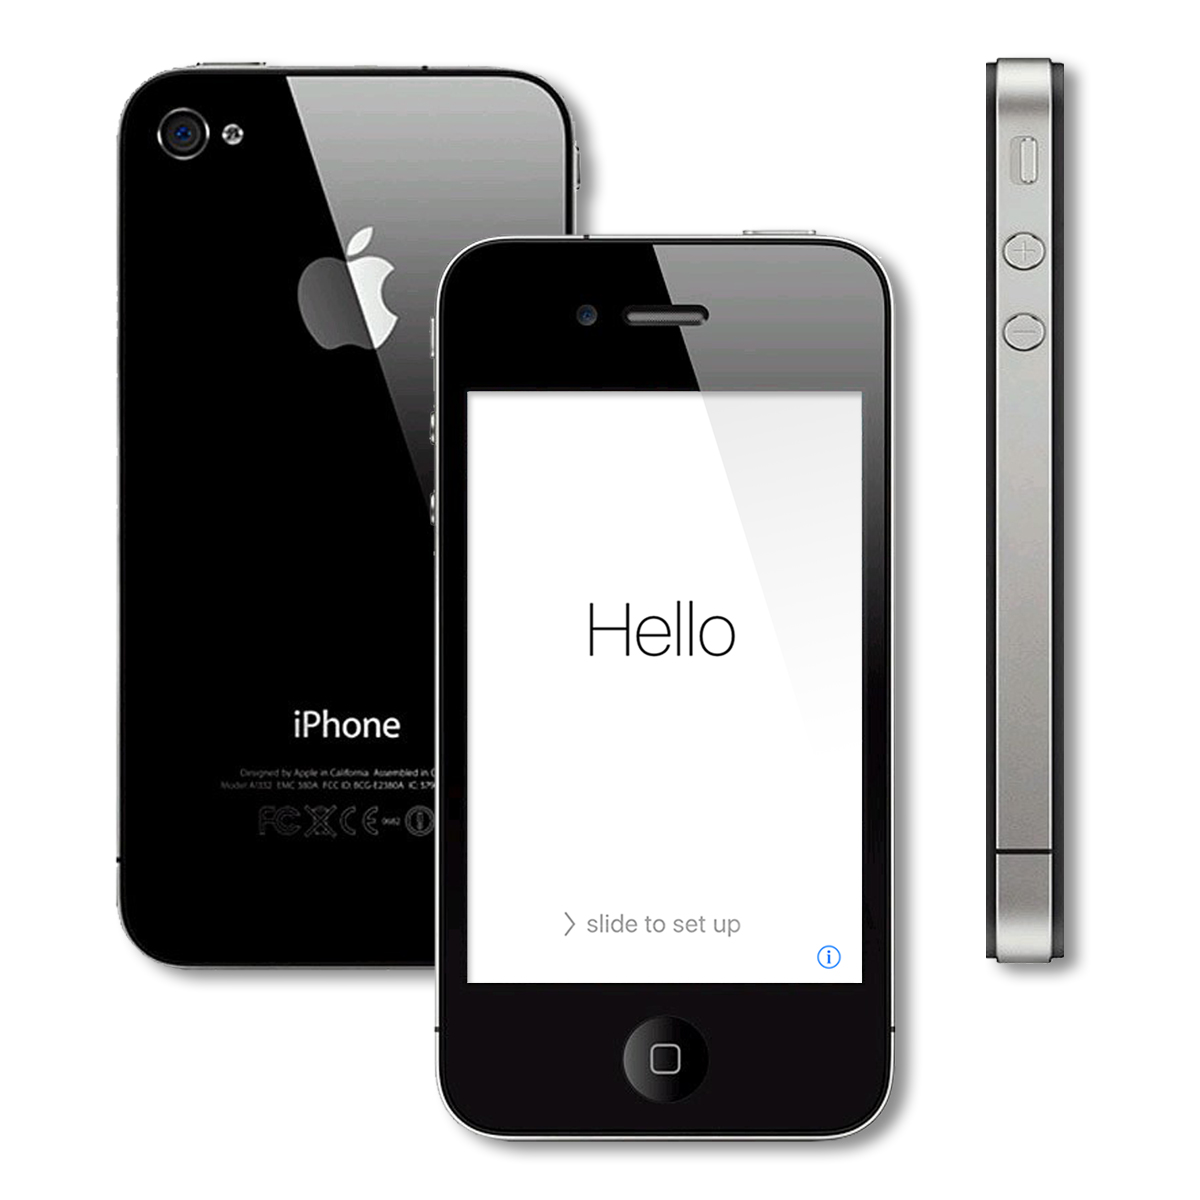 iphone 4s no contract apple iphone 4s 16gb smartphone verizon no contract ebay 2510